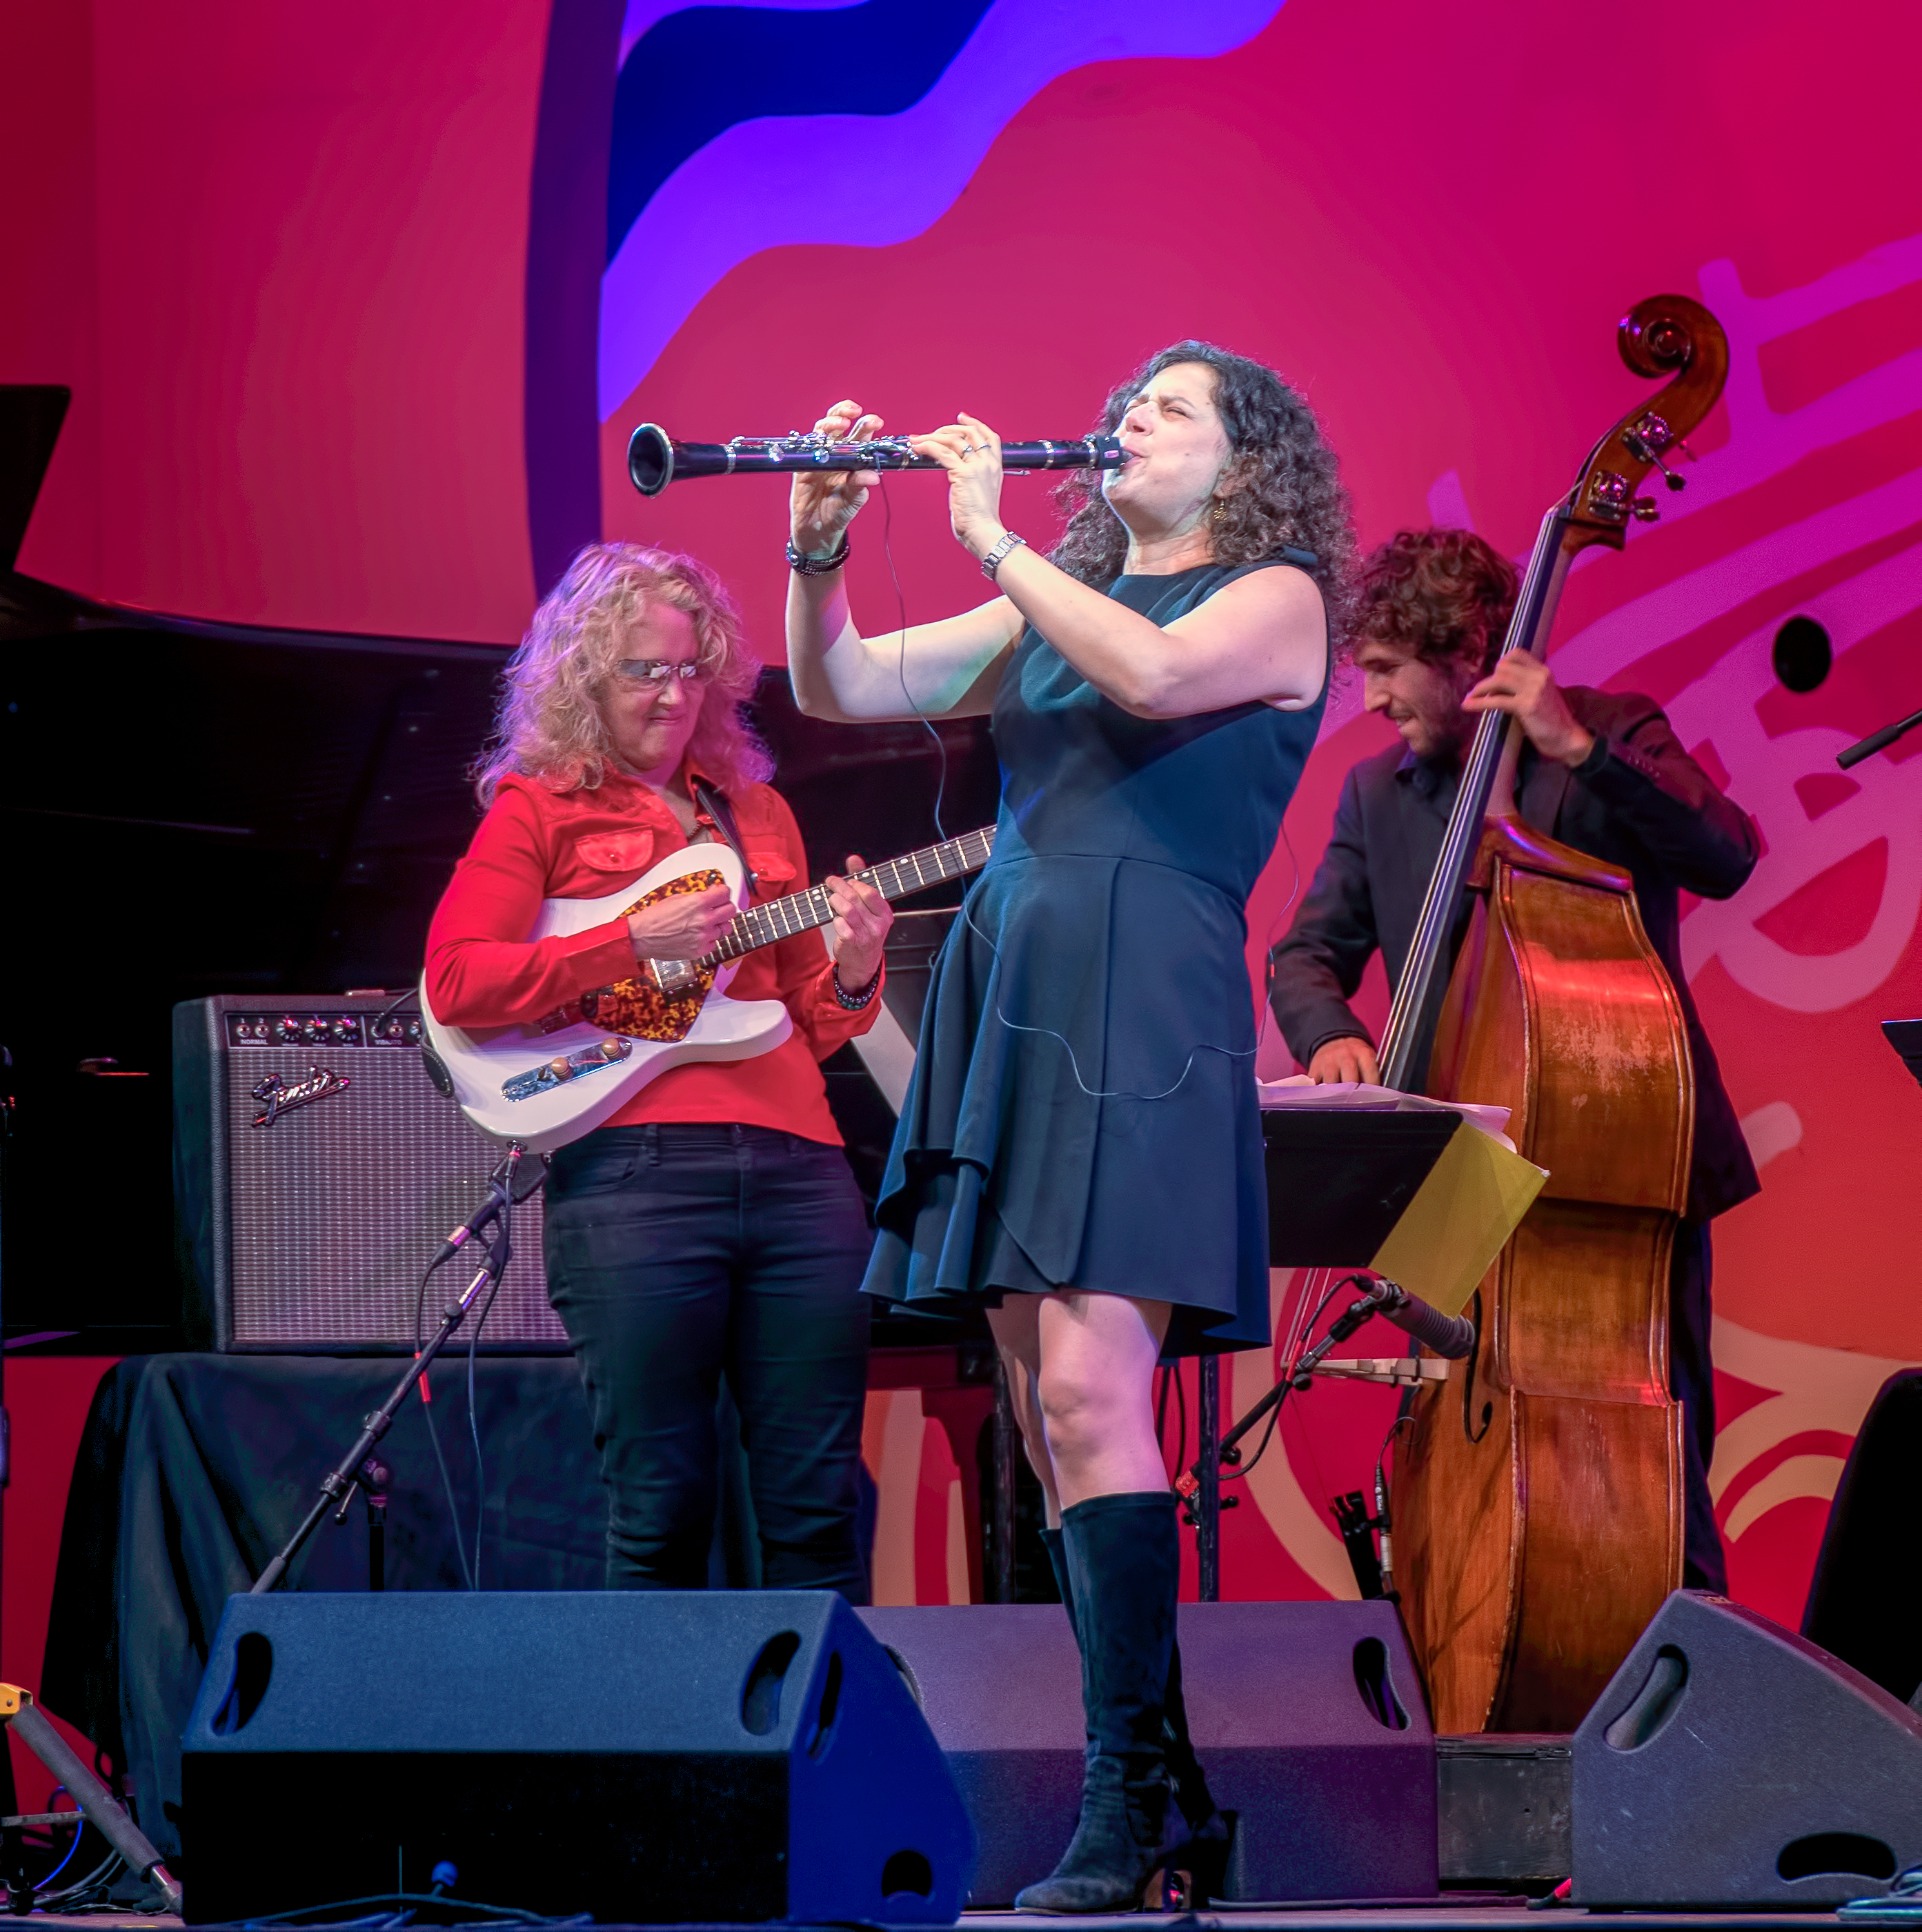 Sheryl Bailey, Anat Cohen and Tal Mashiach with the Anat Cohen Tentet at the Monterey Jazz Festival 2018